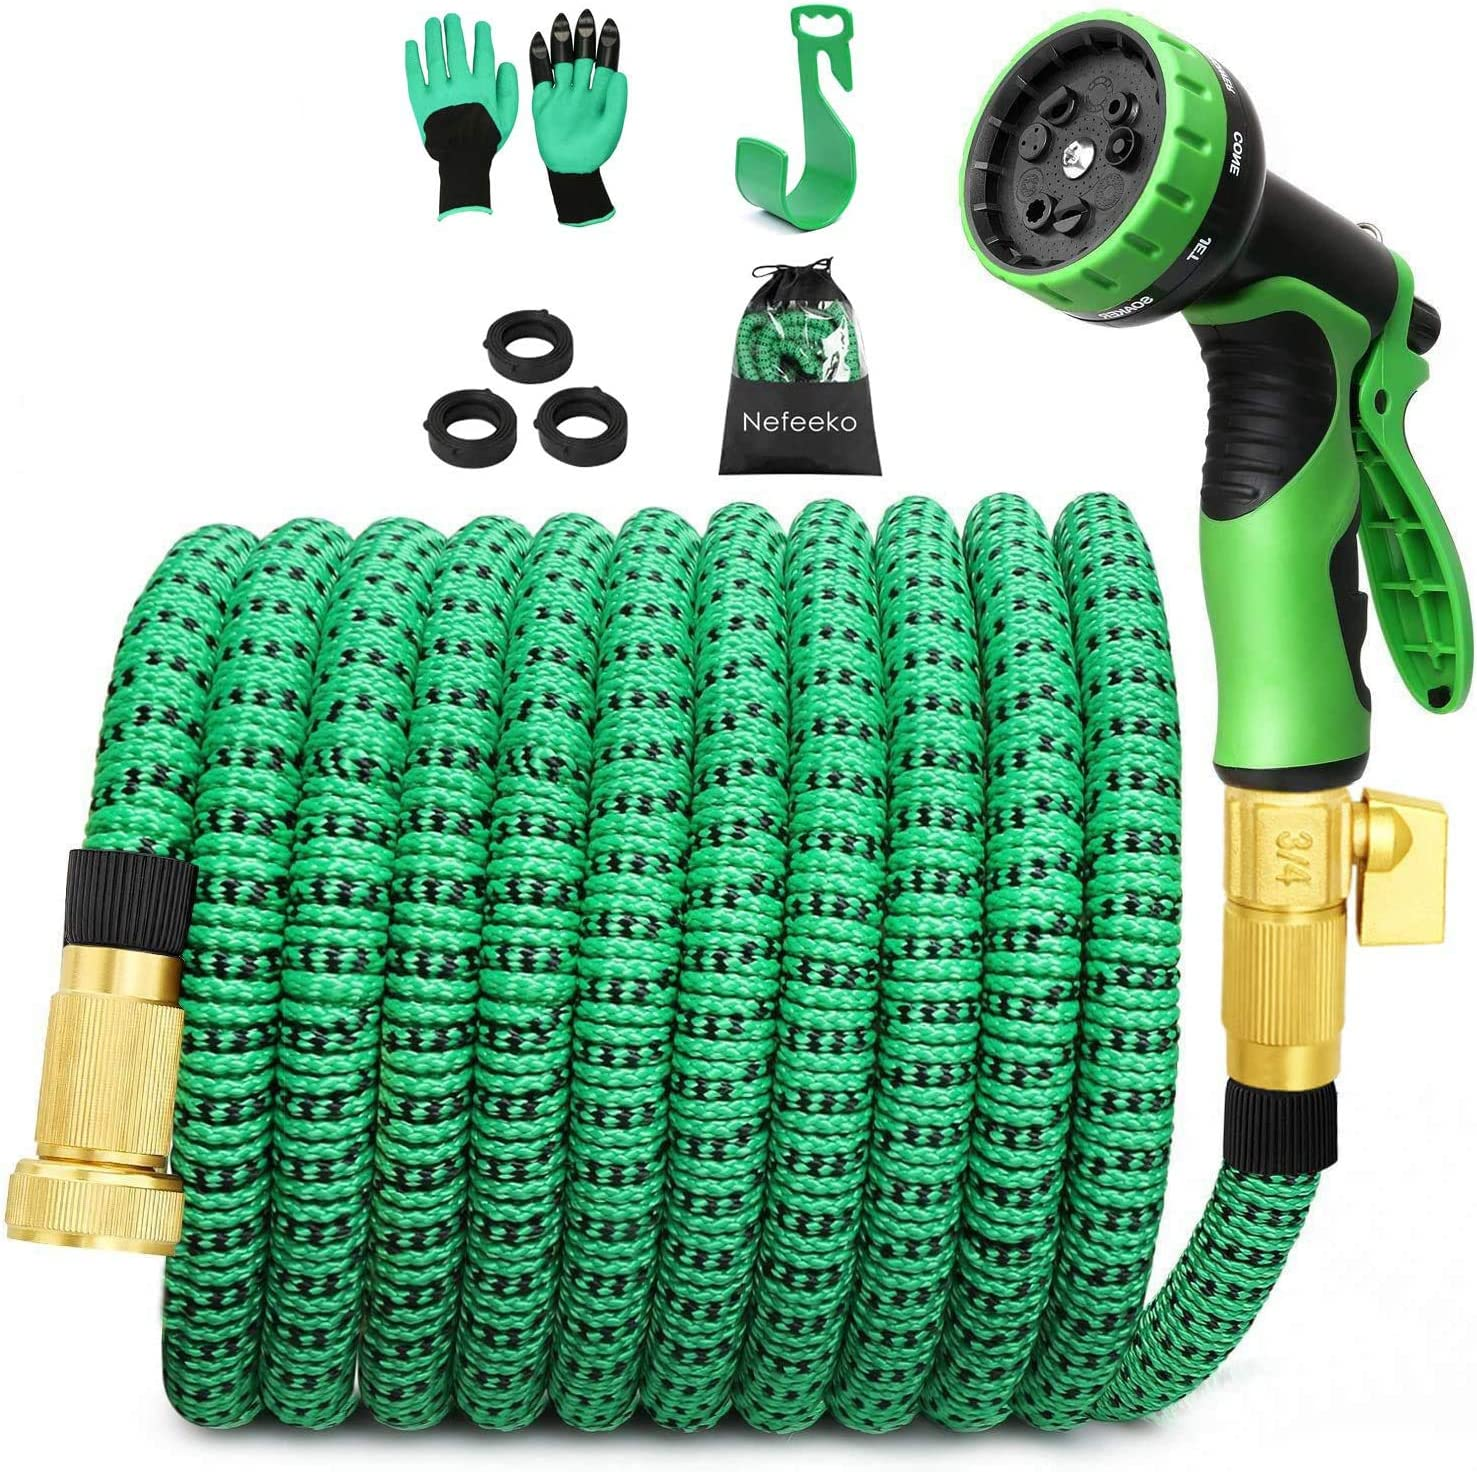 Nefeeko Garden Hose Expandable,50ft Leakproof Lightweight Retractable Water Hose with Solid Brass Fittings,Extra Strength 3750D Durable Gardening Flexible Hose Pipe(Green+Black)